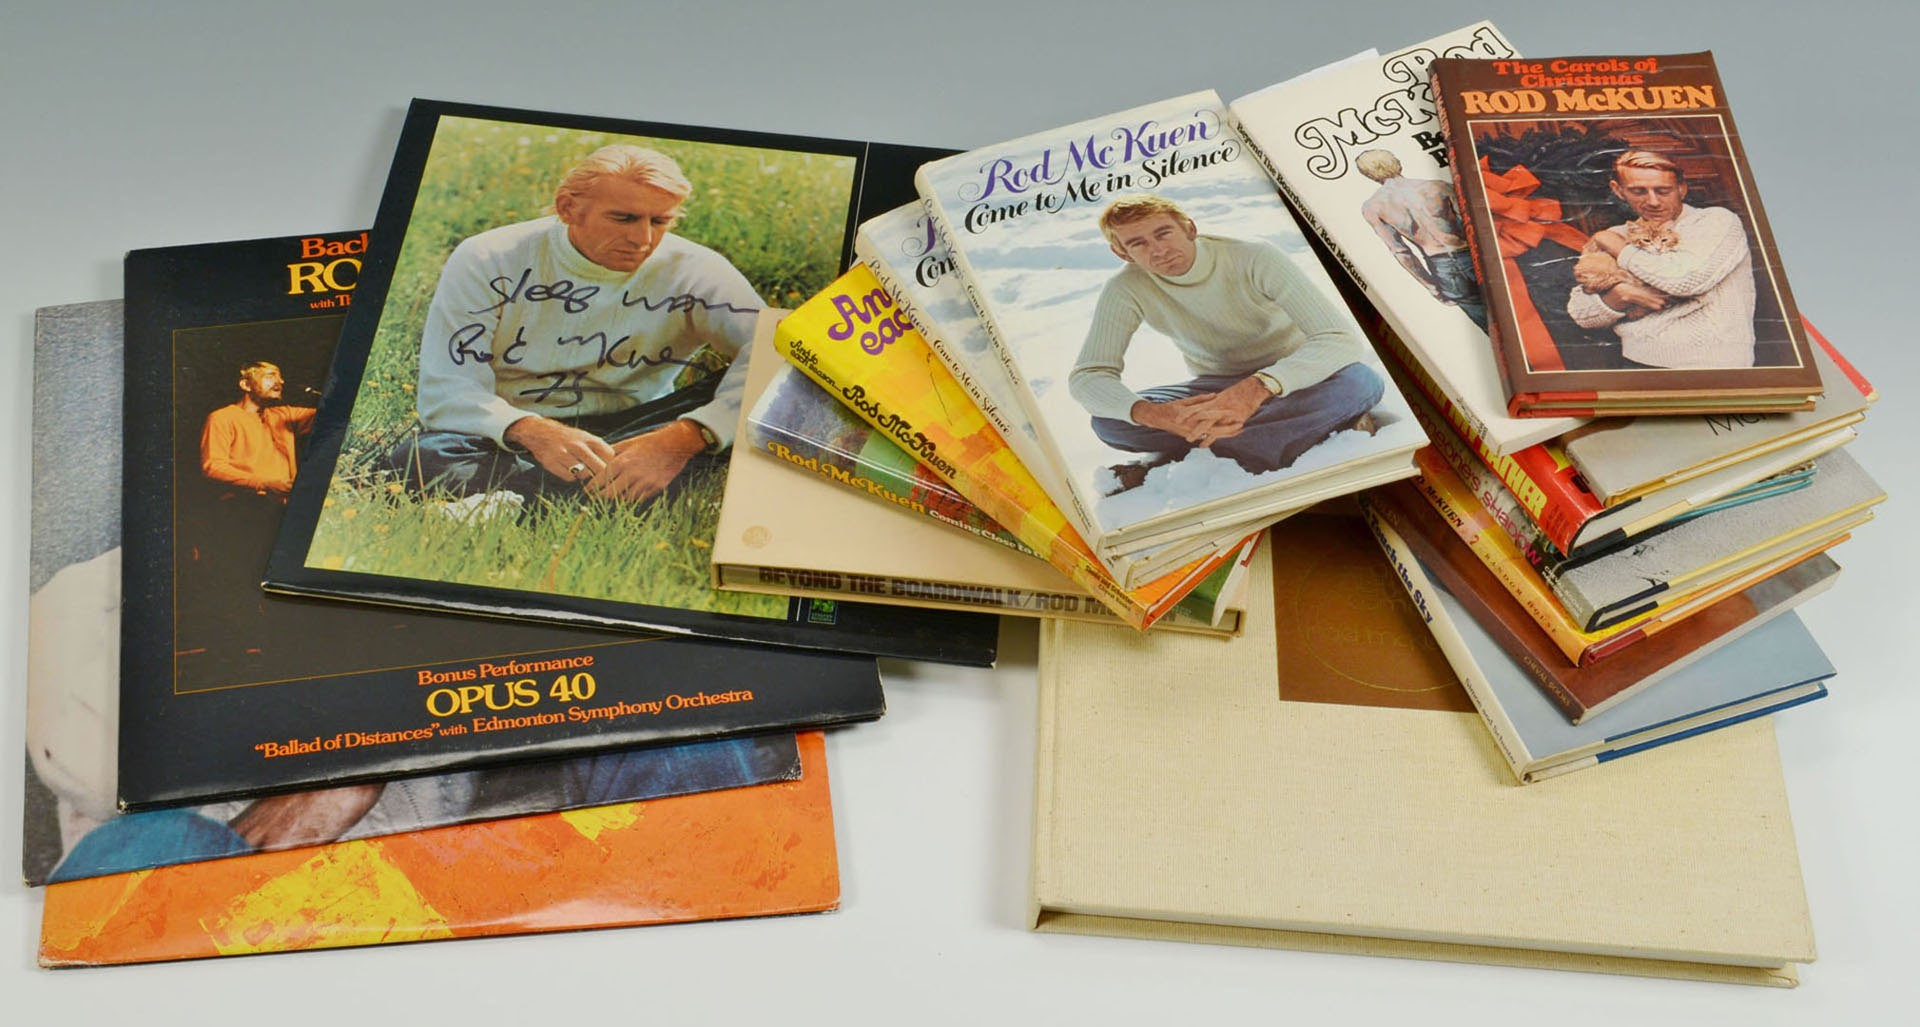 Lot 4010231: Collection of Rod McKuen albums & first edition book